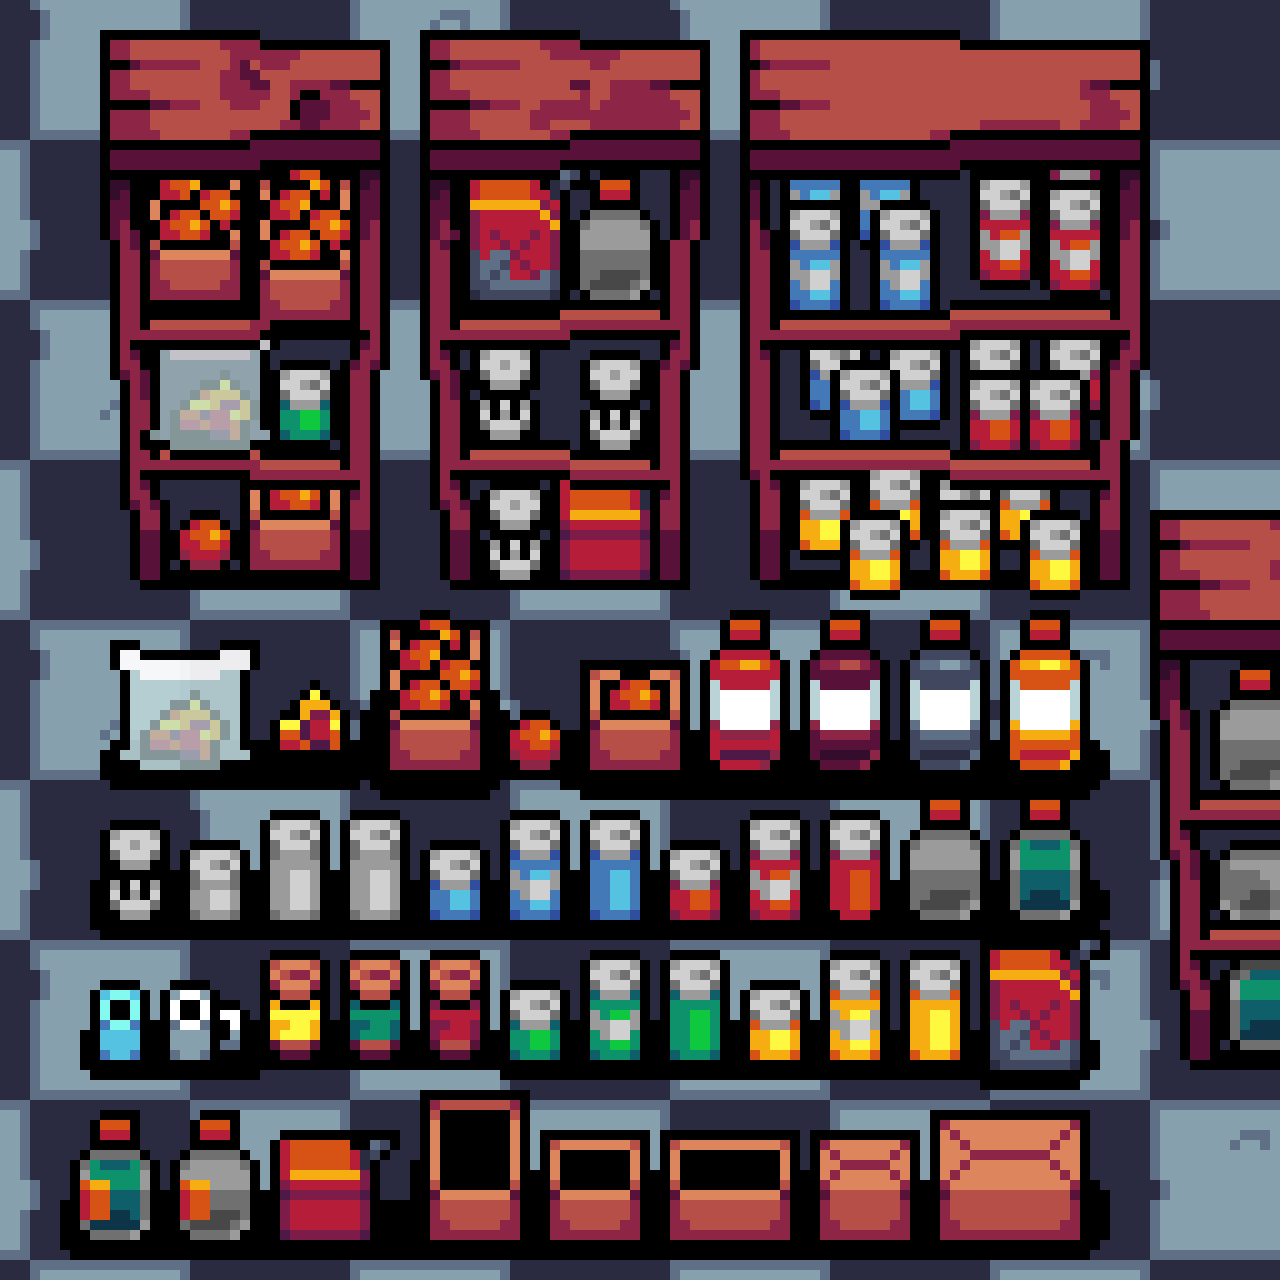 New items for my game!